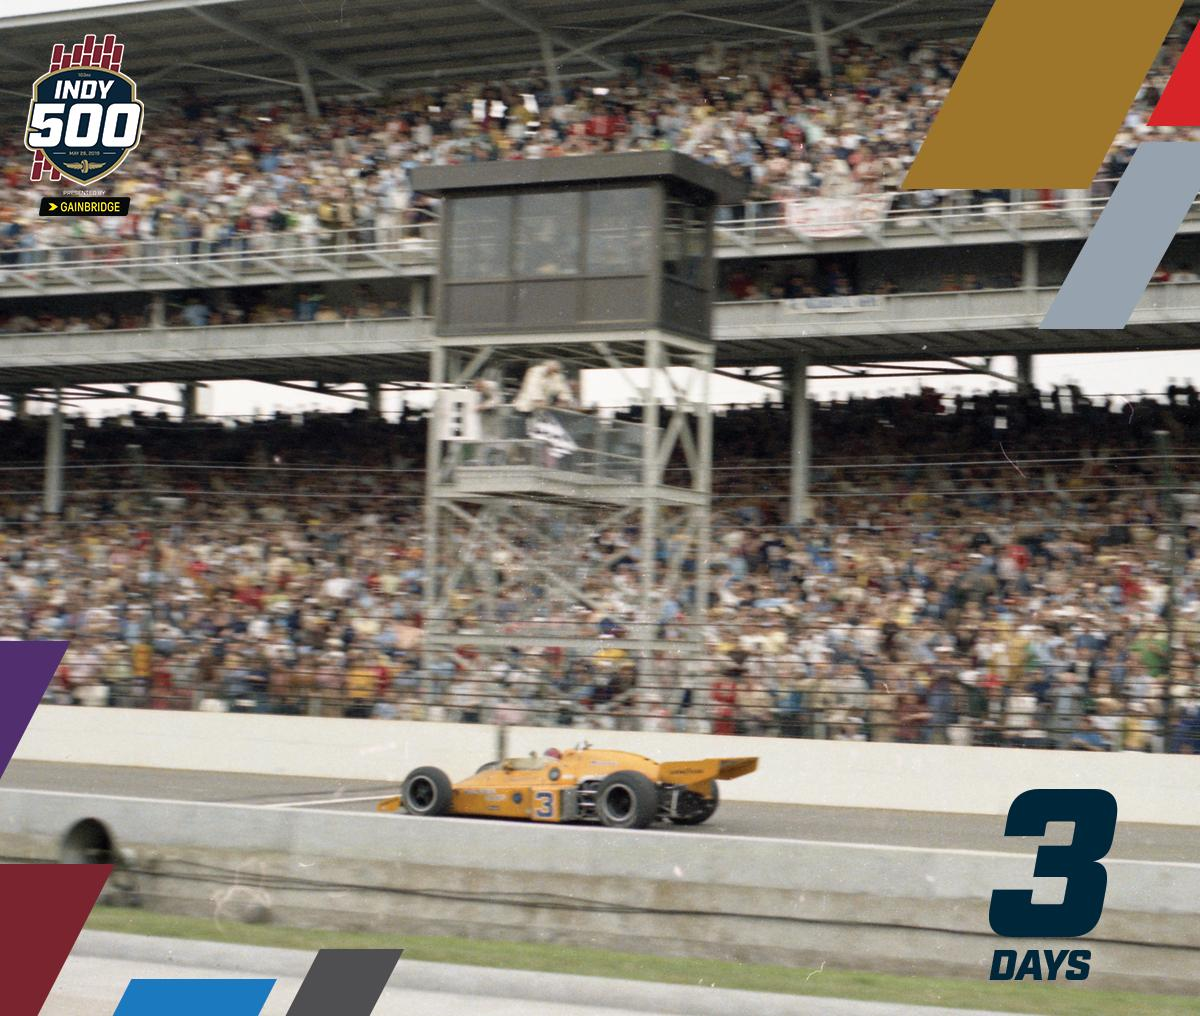 We are 3️⃣ days from the 103rd Running of the #Indy500 Presented by @Gainbridgelife! 3️⃣: Car No. 3 has won the #Indy500 11 times, more than any other number. #ThisIsMay | #IMS | #INDYCAR